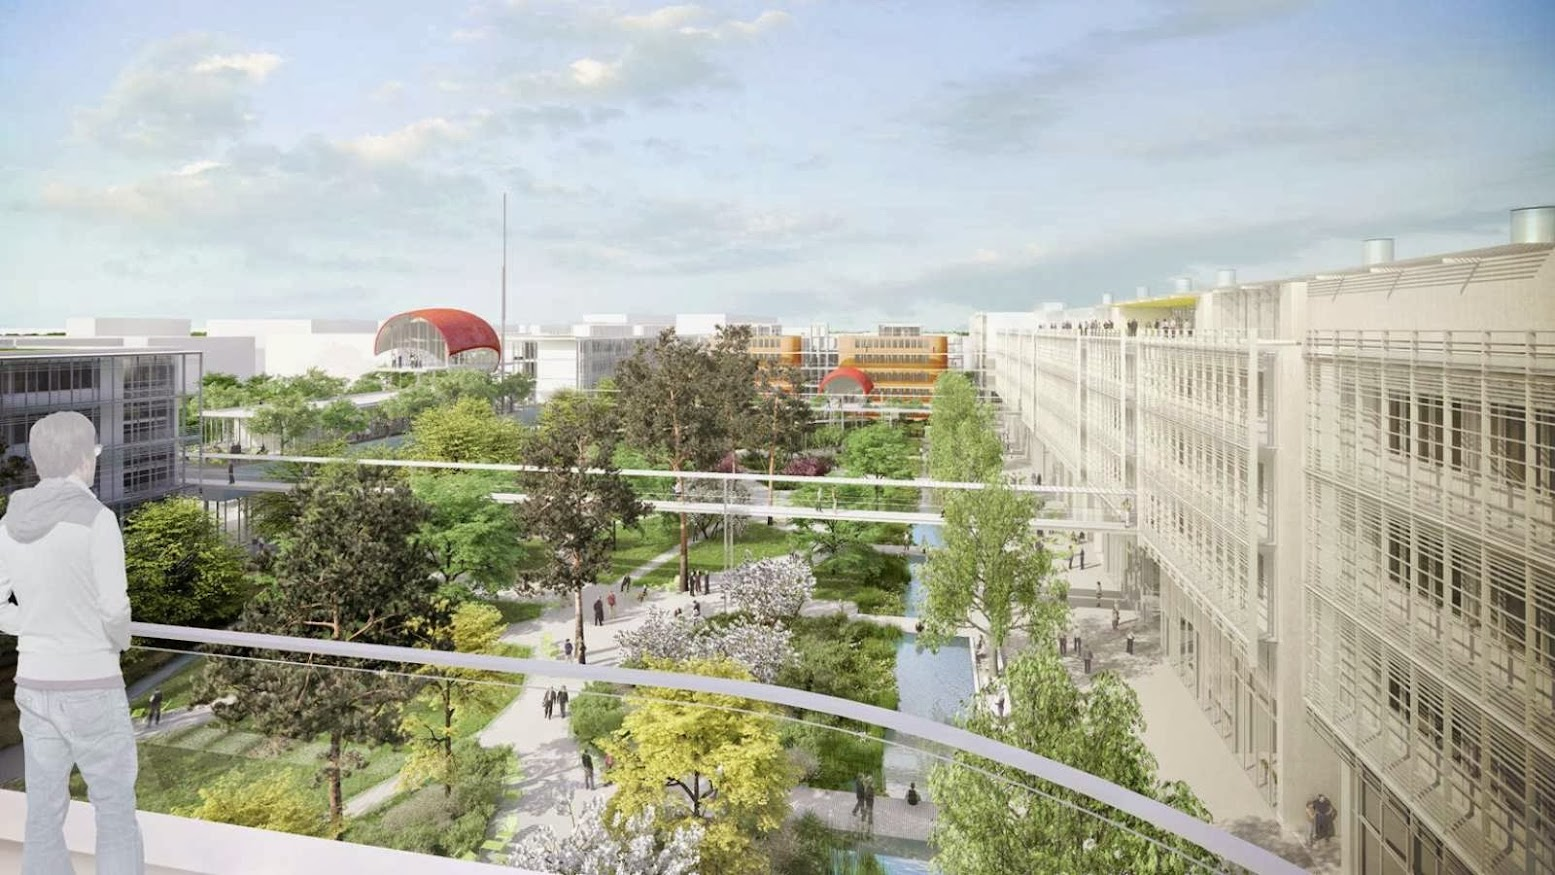 ENS cachan paris-saclay, Francia: [RENZO PIANO WINS THE ENS CACHAN EXPANSION COMPETITION]